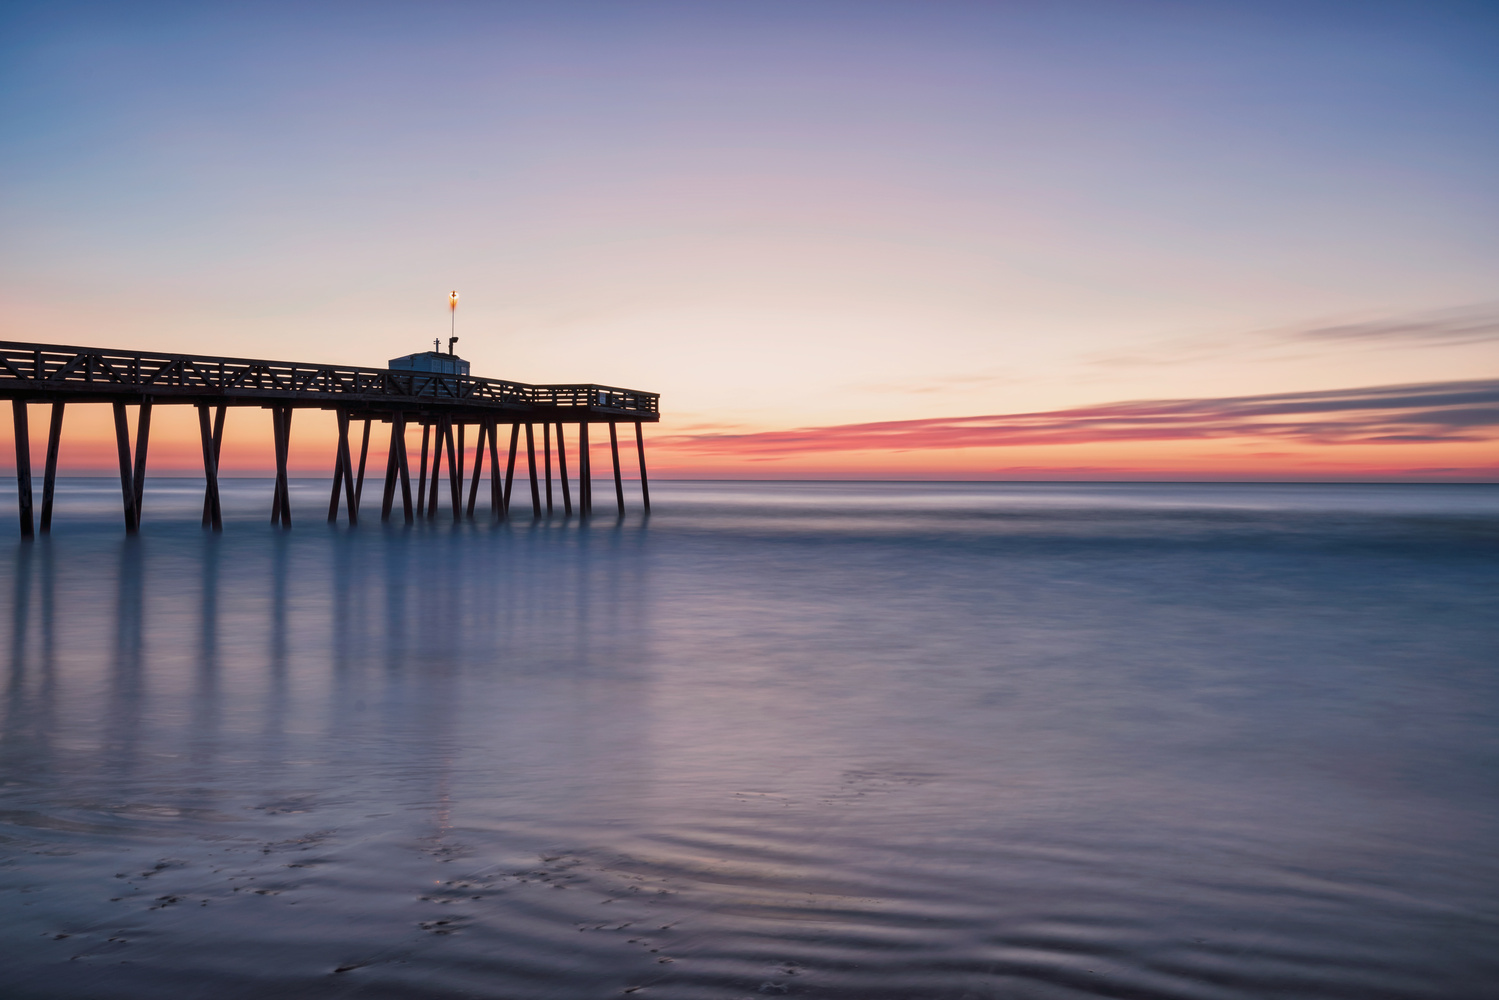 Ocean City Sunrise by Brent Guiliano